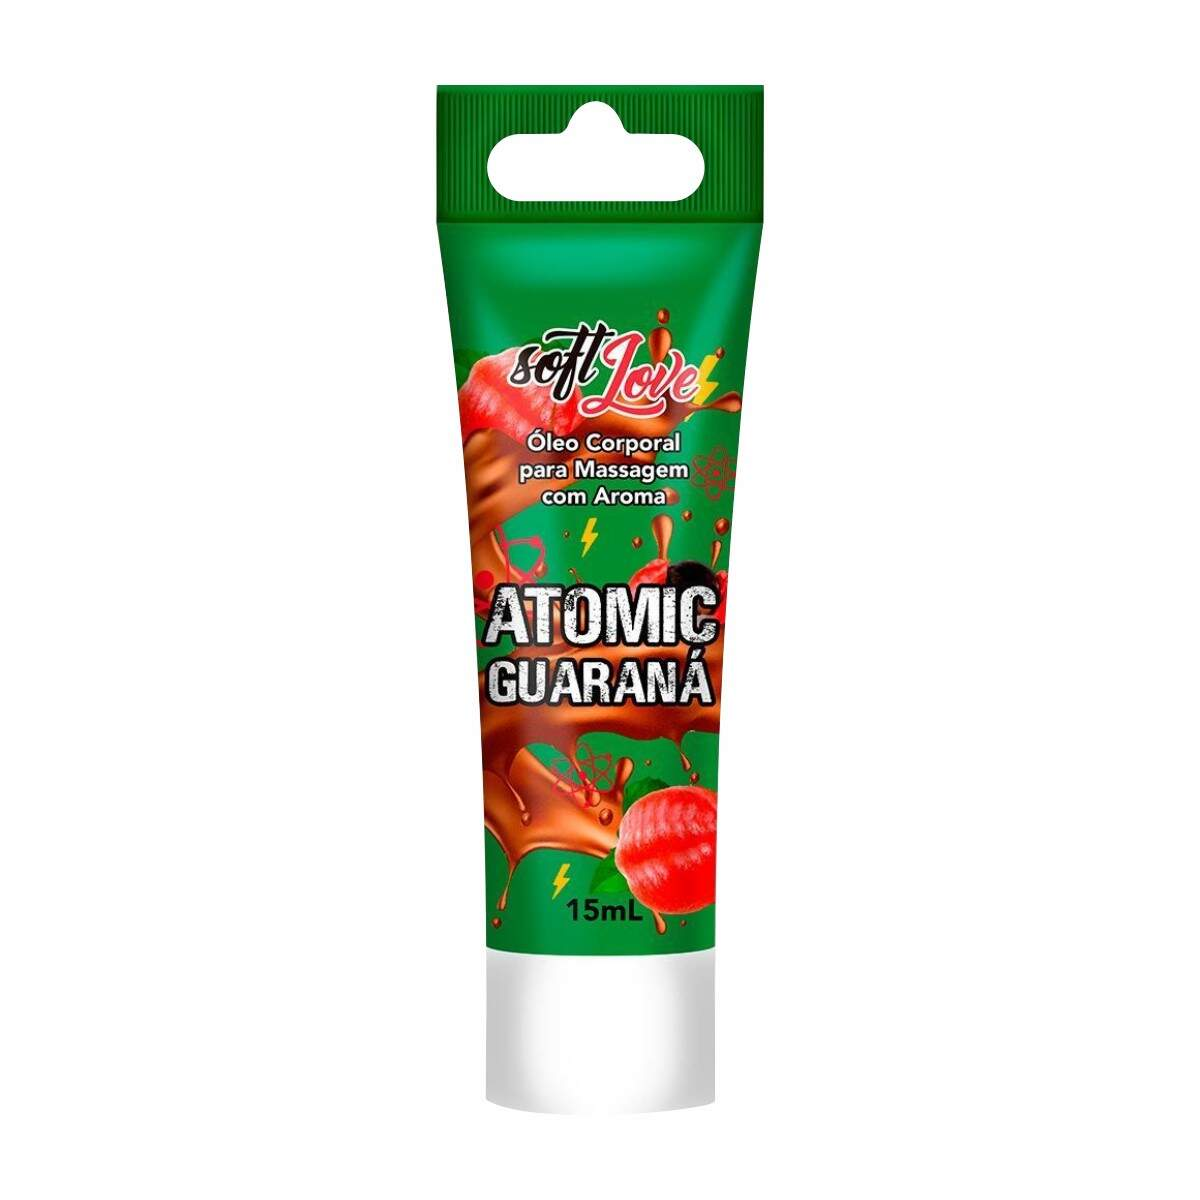 Extreme Atomic Guaraná Excitante Comestível 15 ml Soft Love